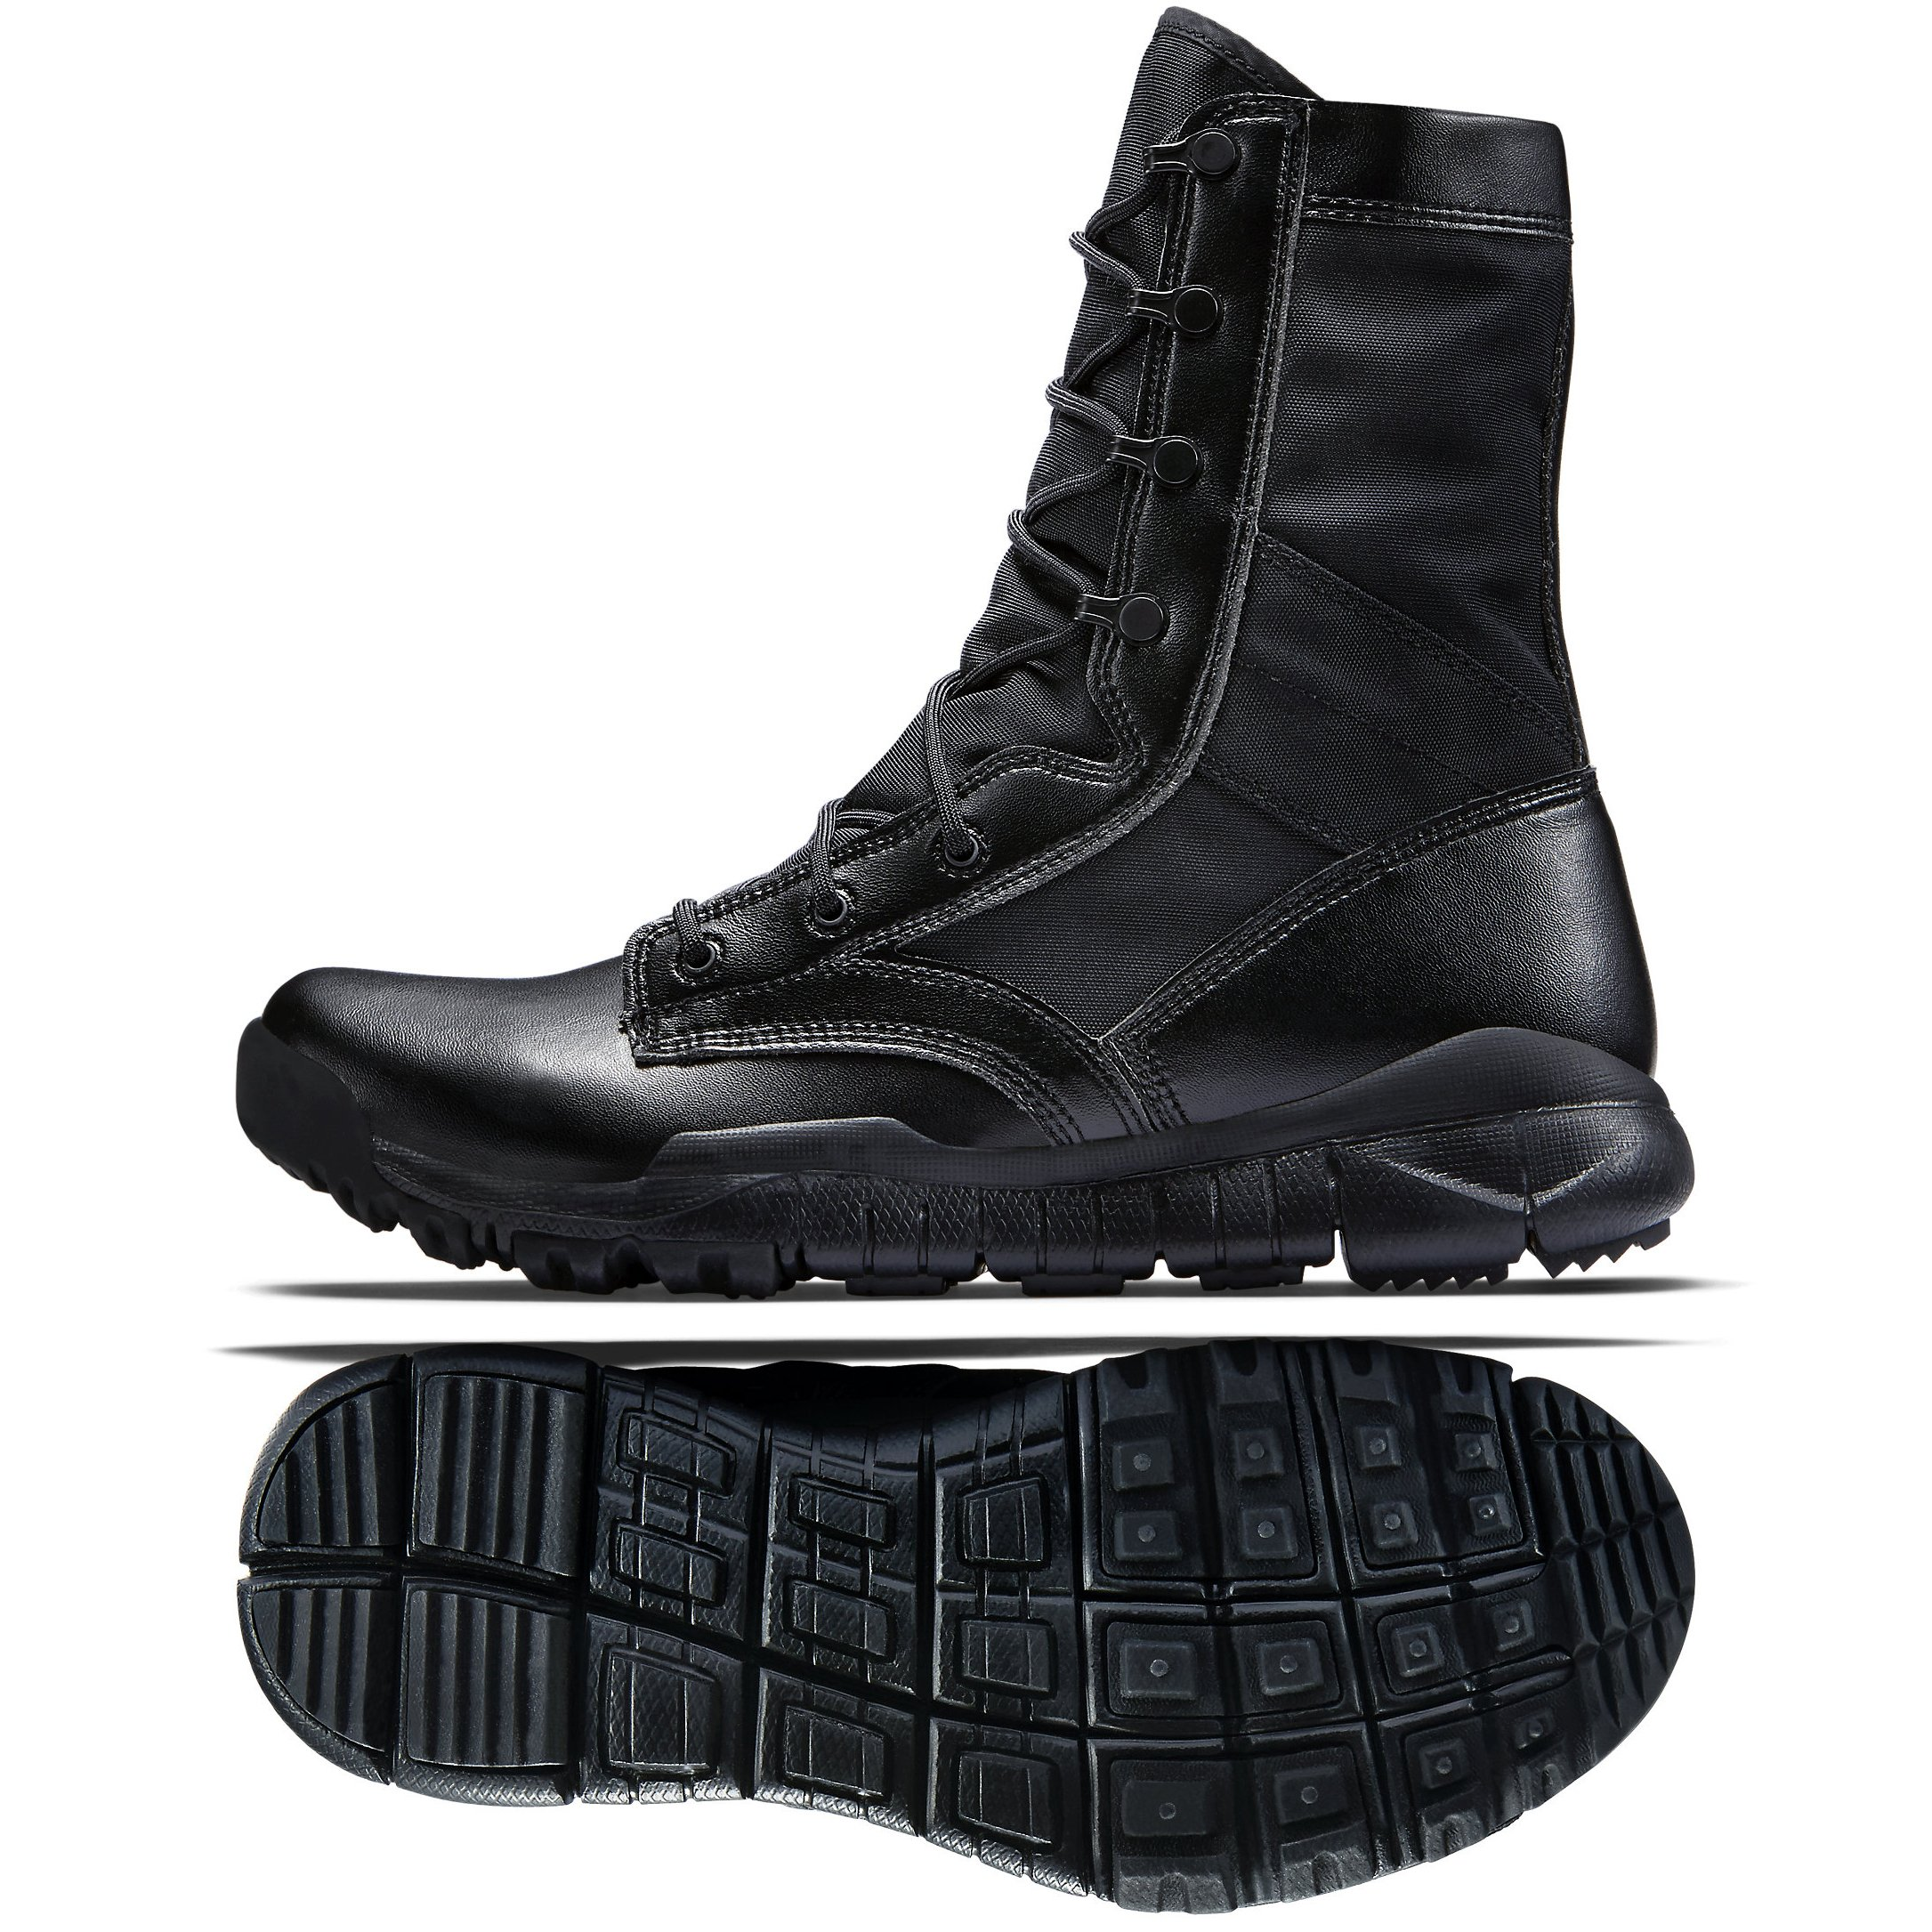 Nike Men's SFB Safety Boots- Buy Online